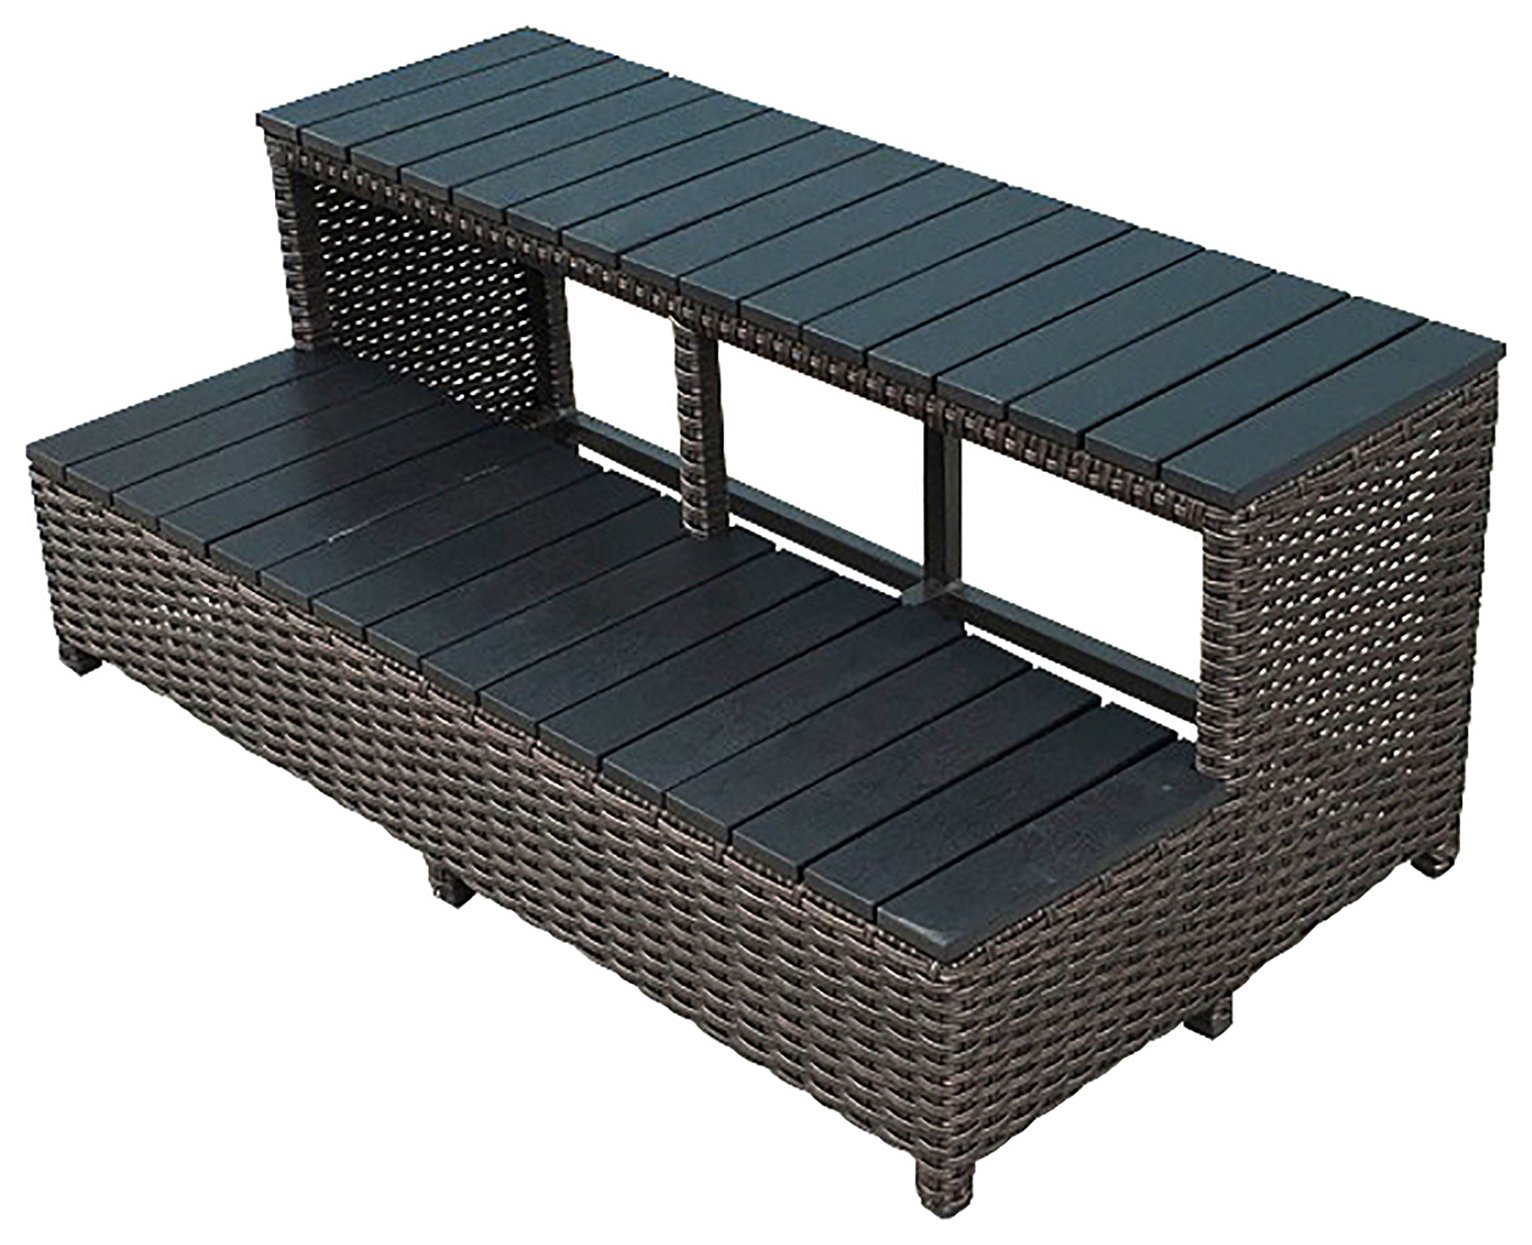 Canadian Spa Wicker Spa Step 96 inch at Argos review